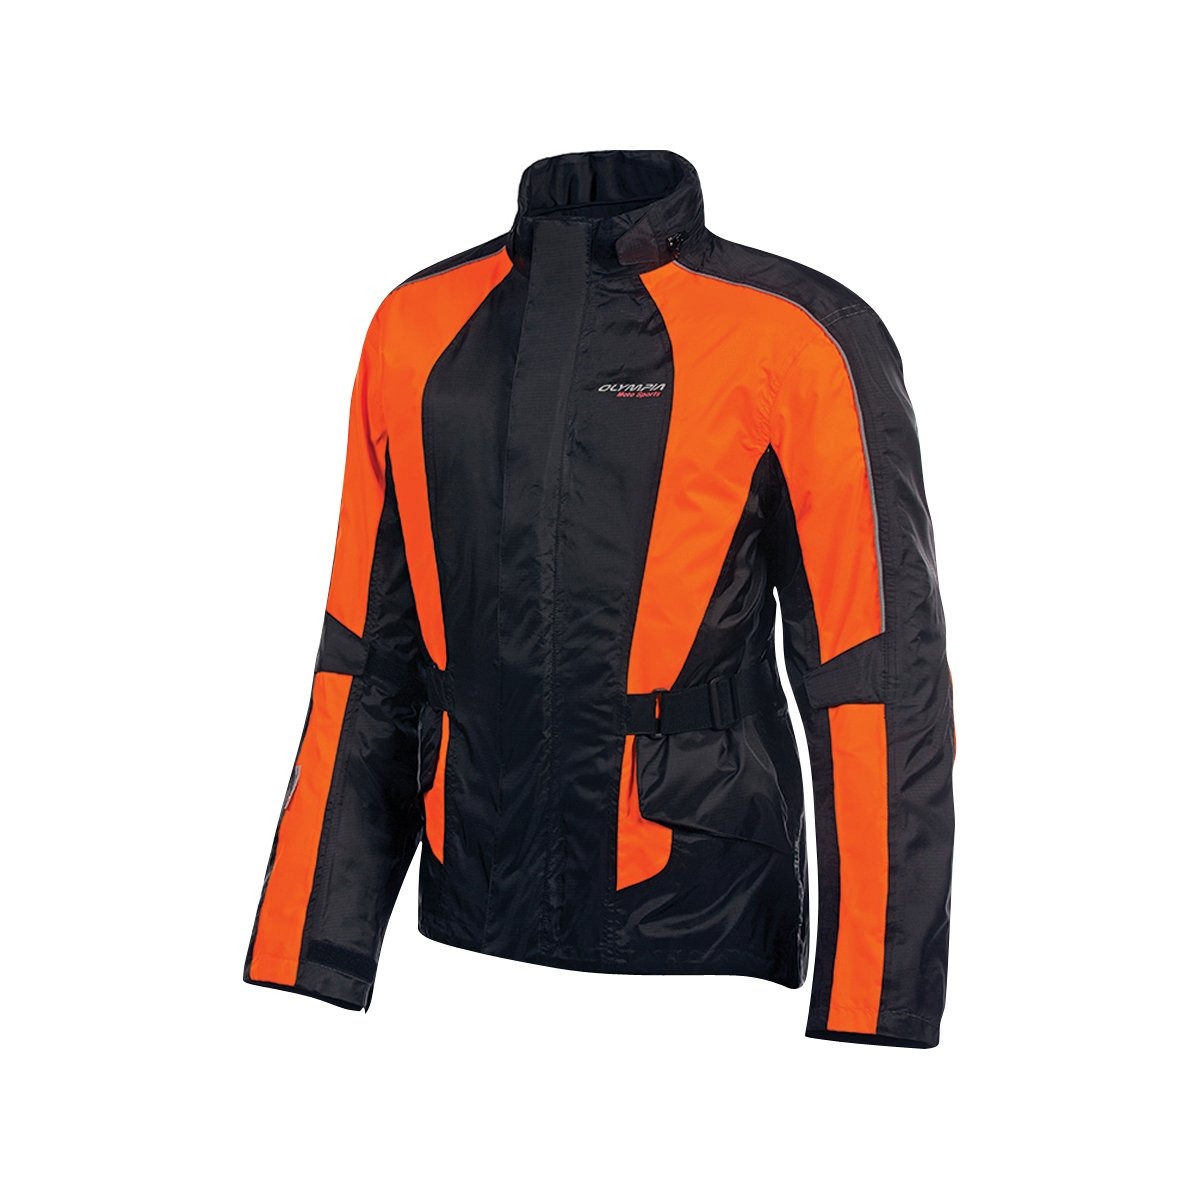 Olympia New Horizon Rain Mens Waterproof Exteriors and Rain Gear On-Road Racing Motorcycle Jacket - Black/Neon Orange/Petite